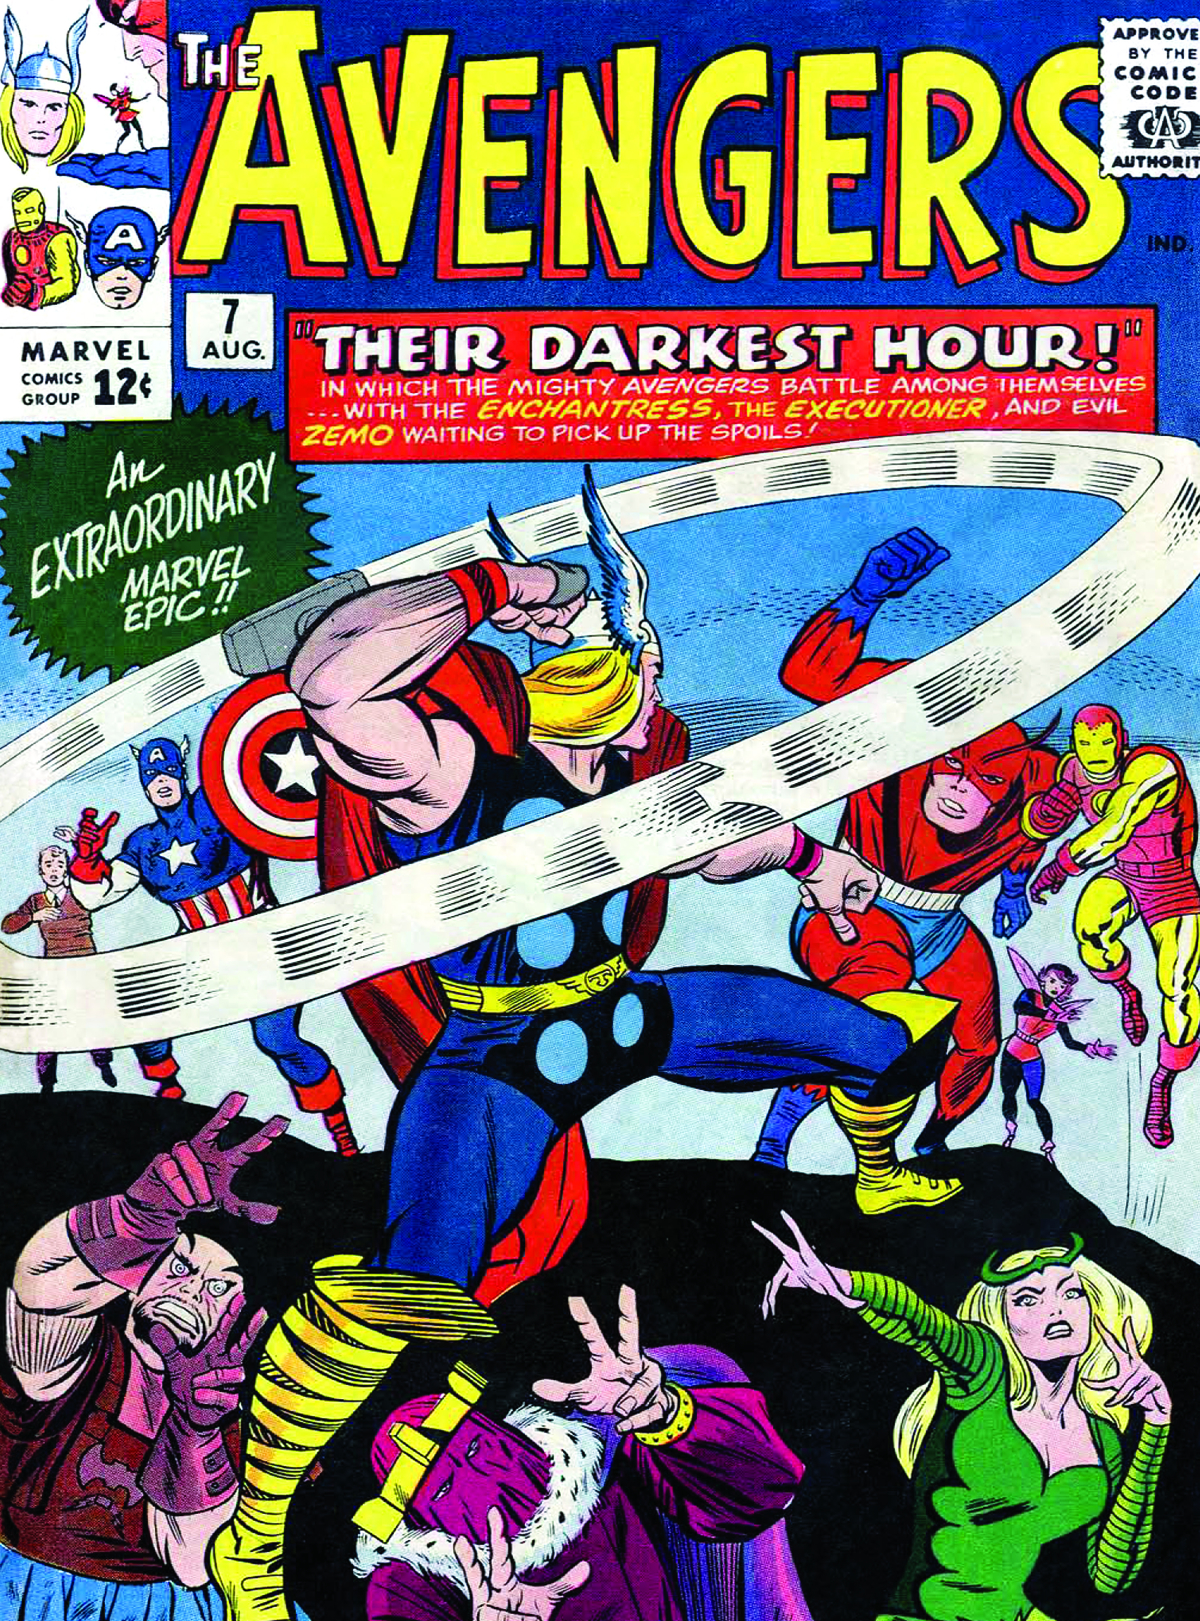 VINTAGE MARVEL COMICS 2014 12 MONTH WALL CALENDAR